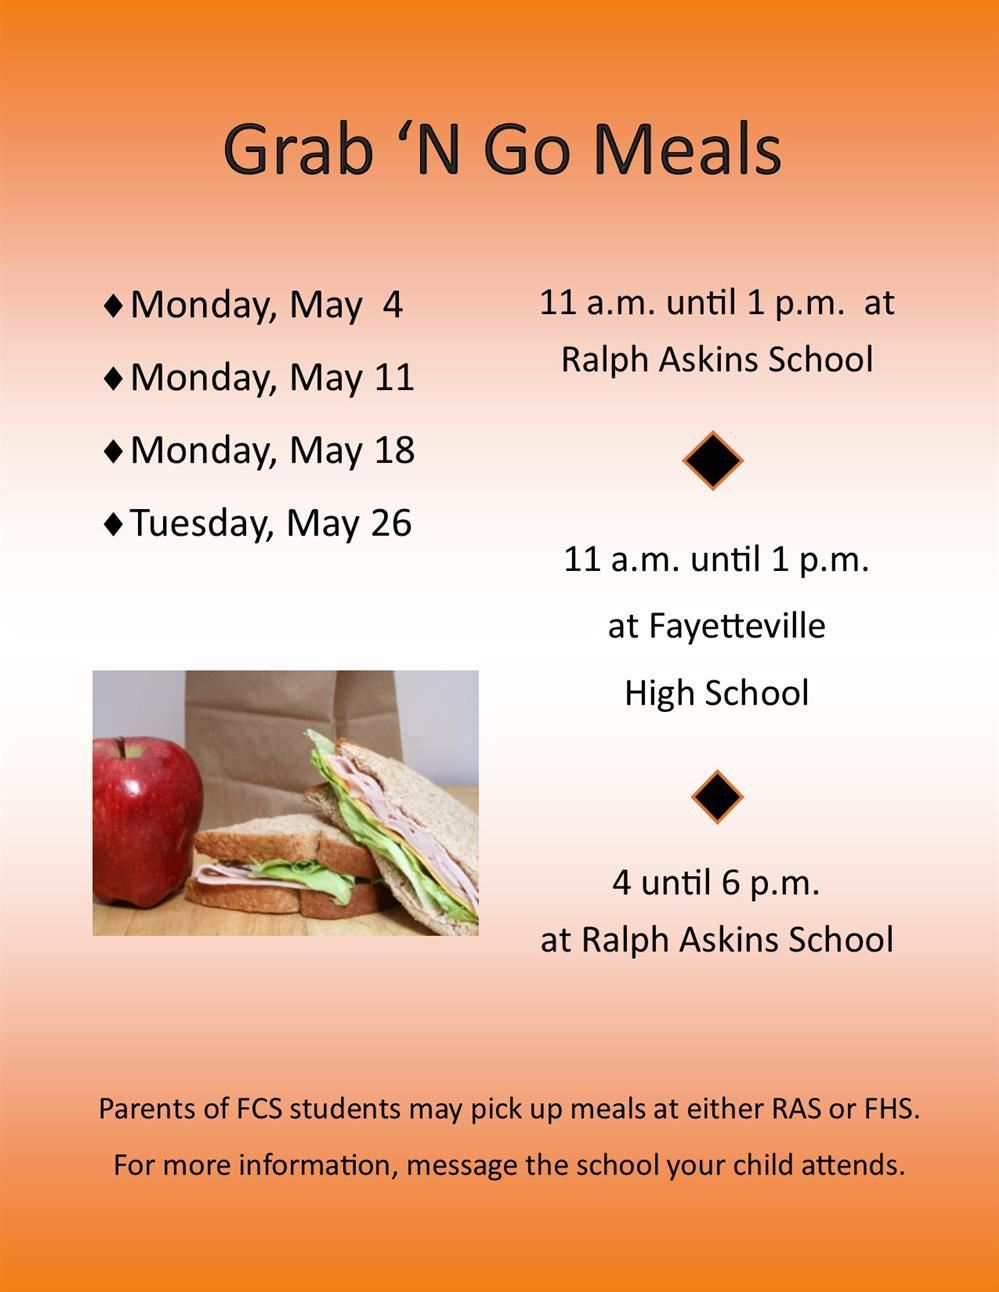 Grab 'N Go meals distributed through May